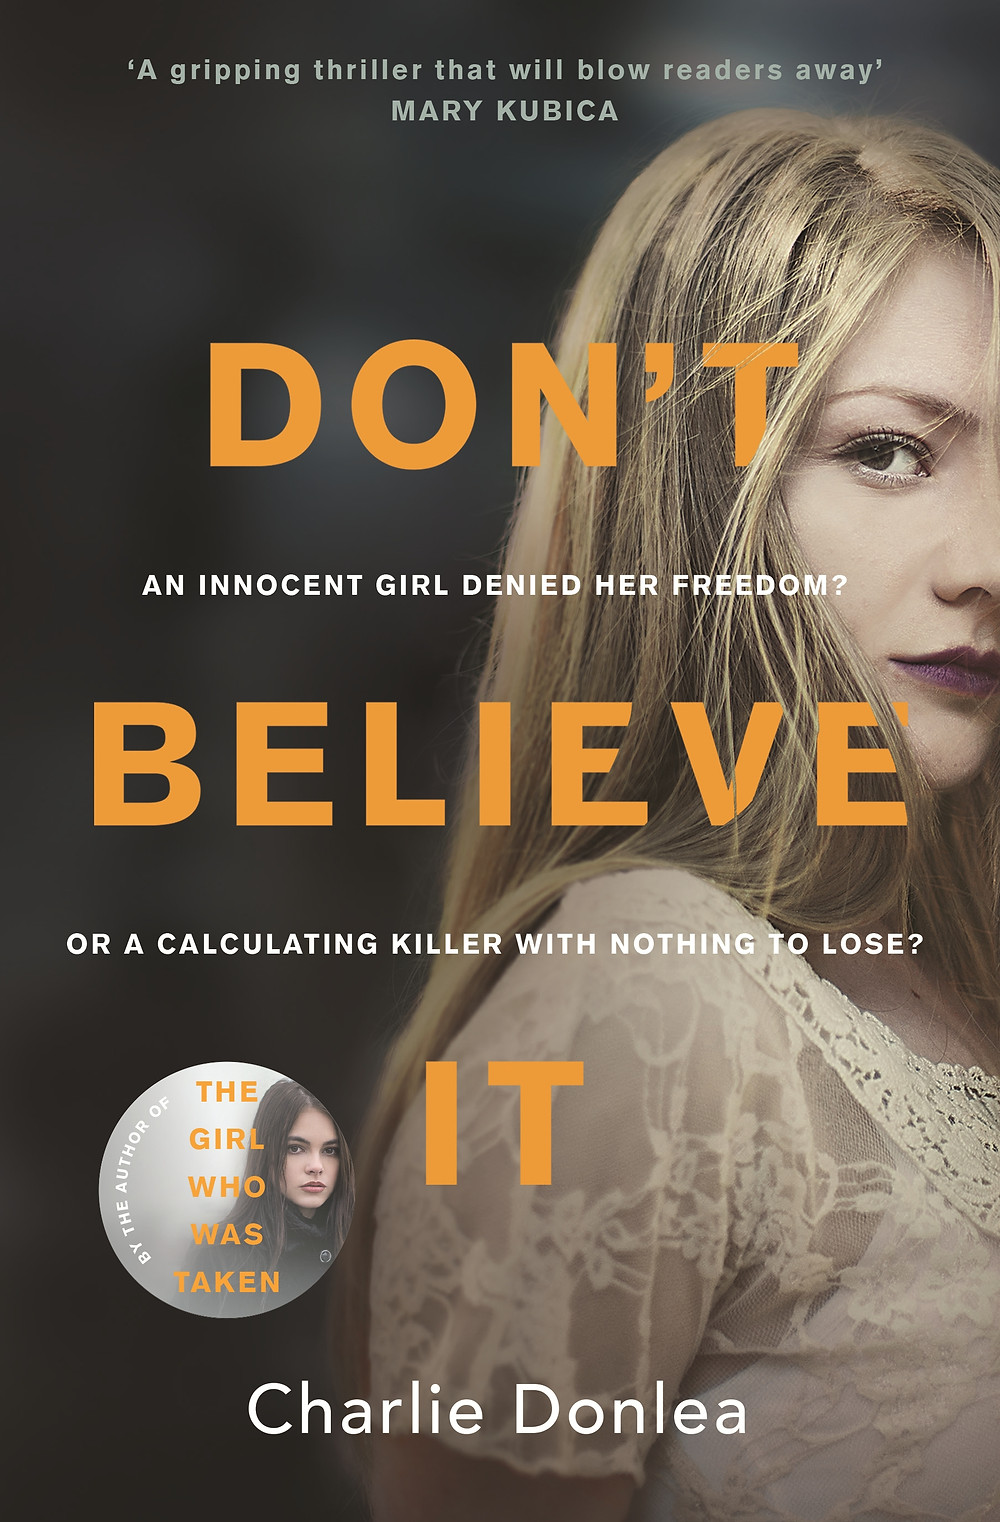 Don't Believe It by Charlie Donlea featured on ibooks for May